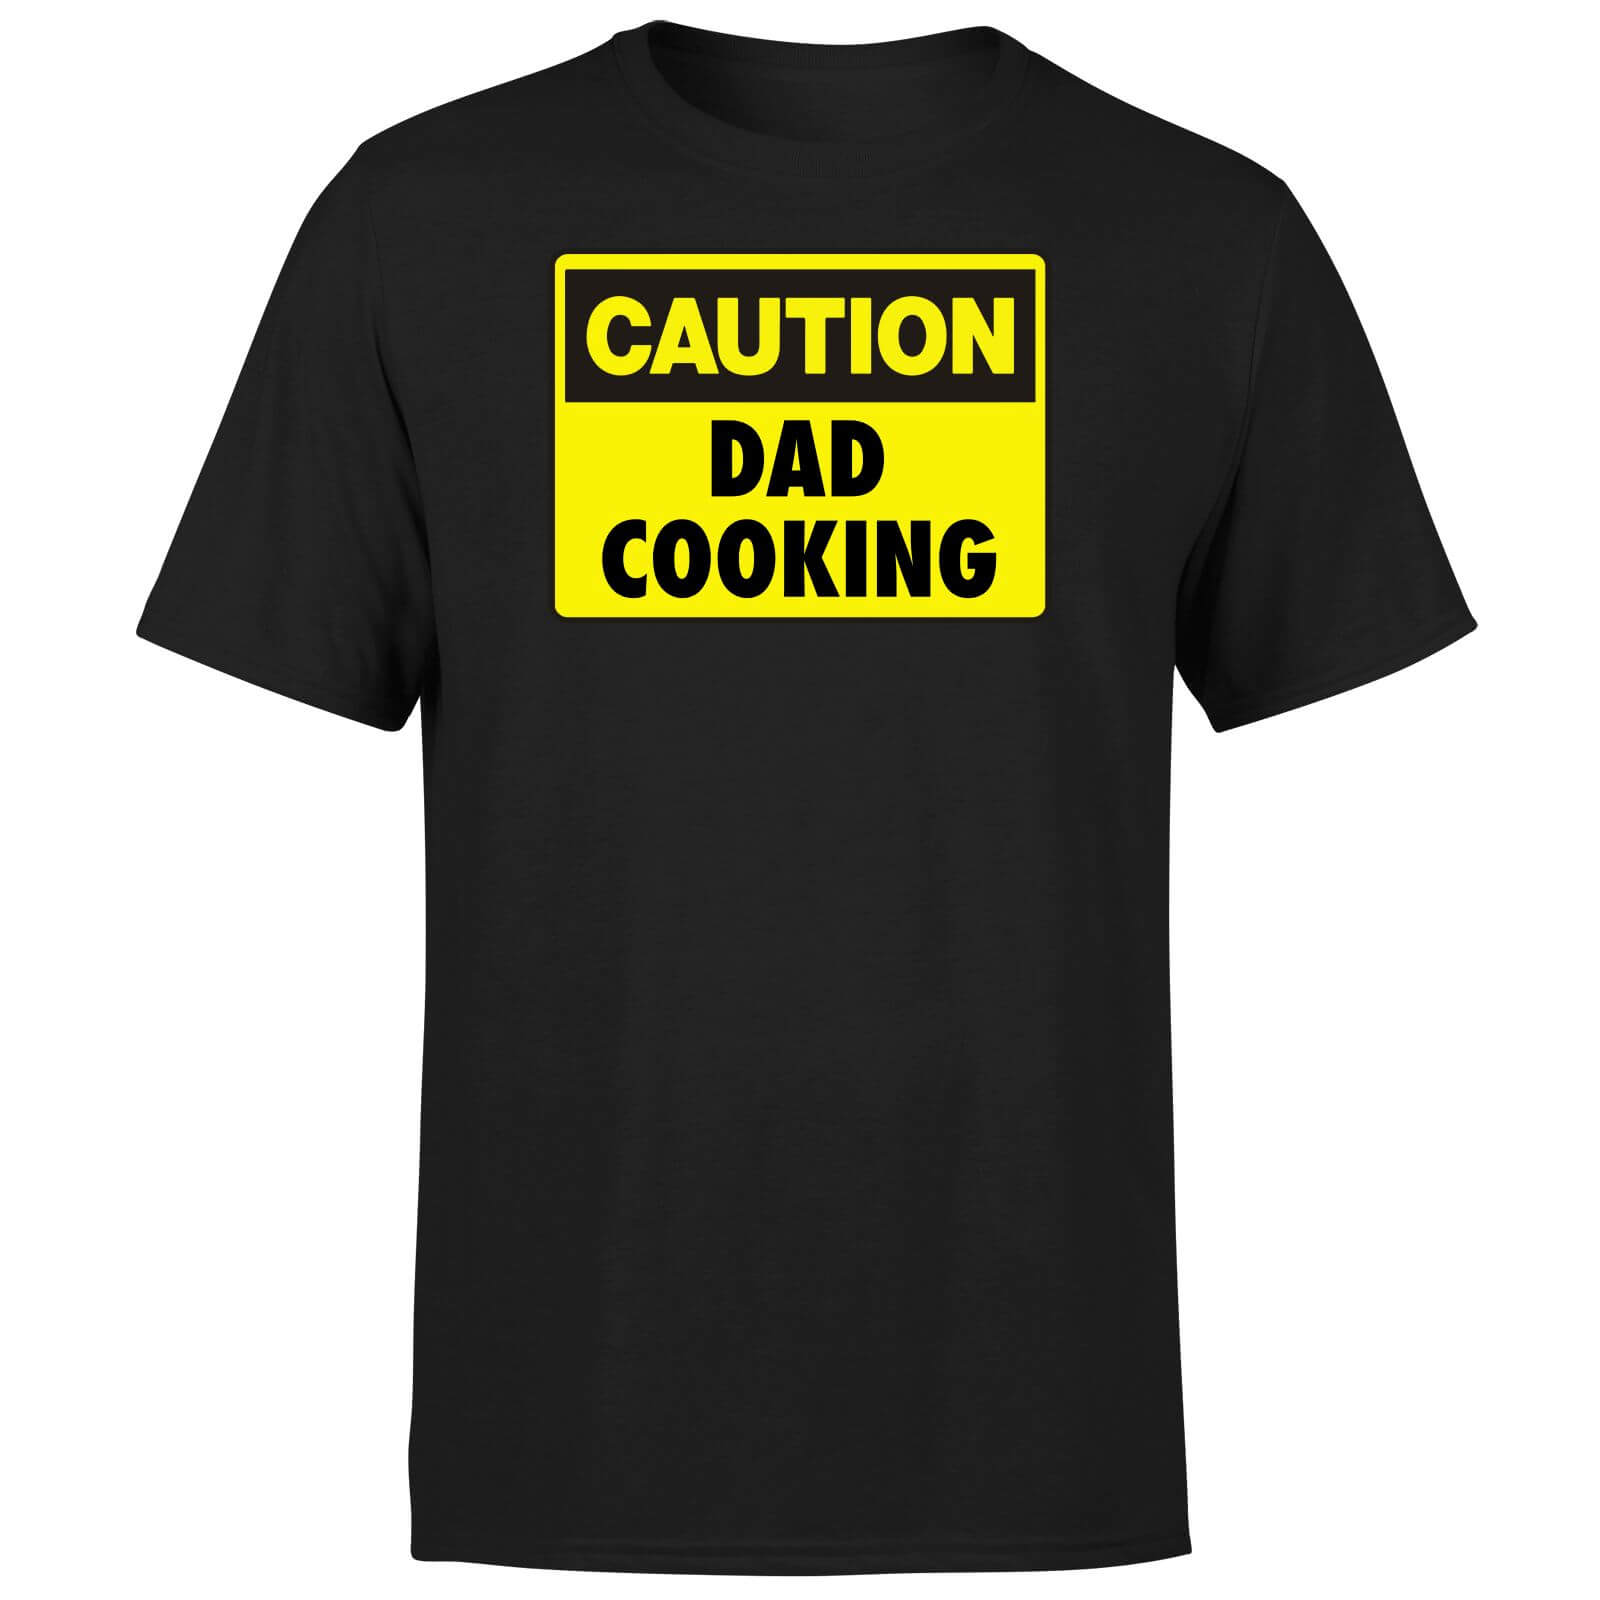 Caution Dad Cooking - Black T-Shirt